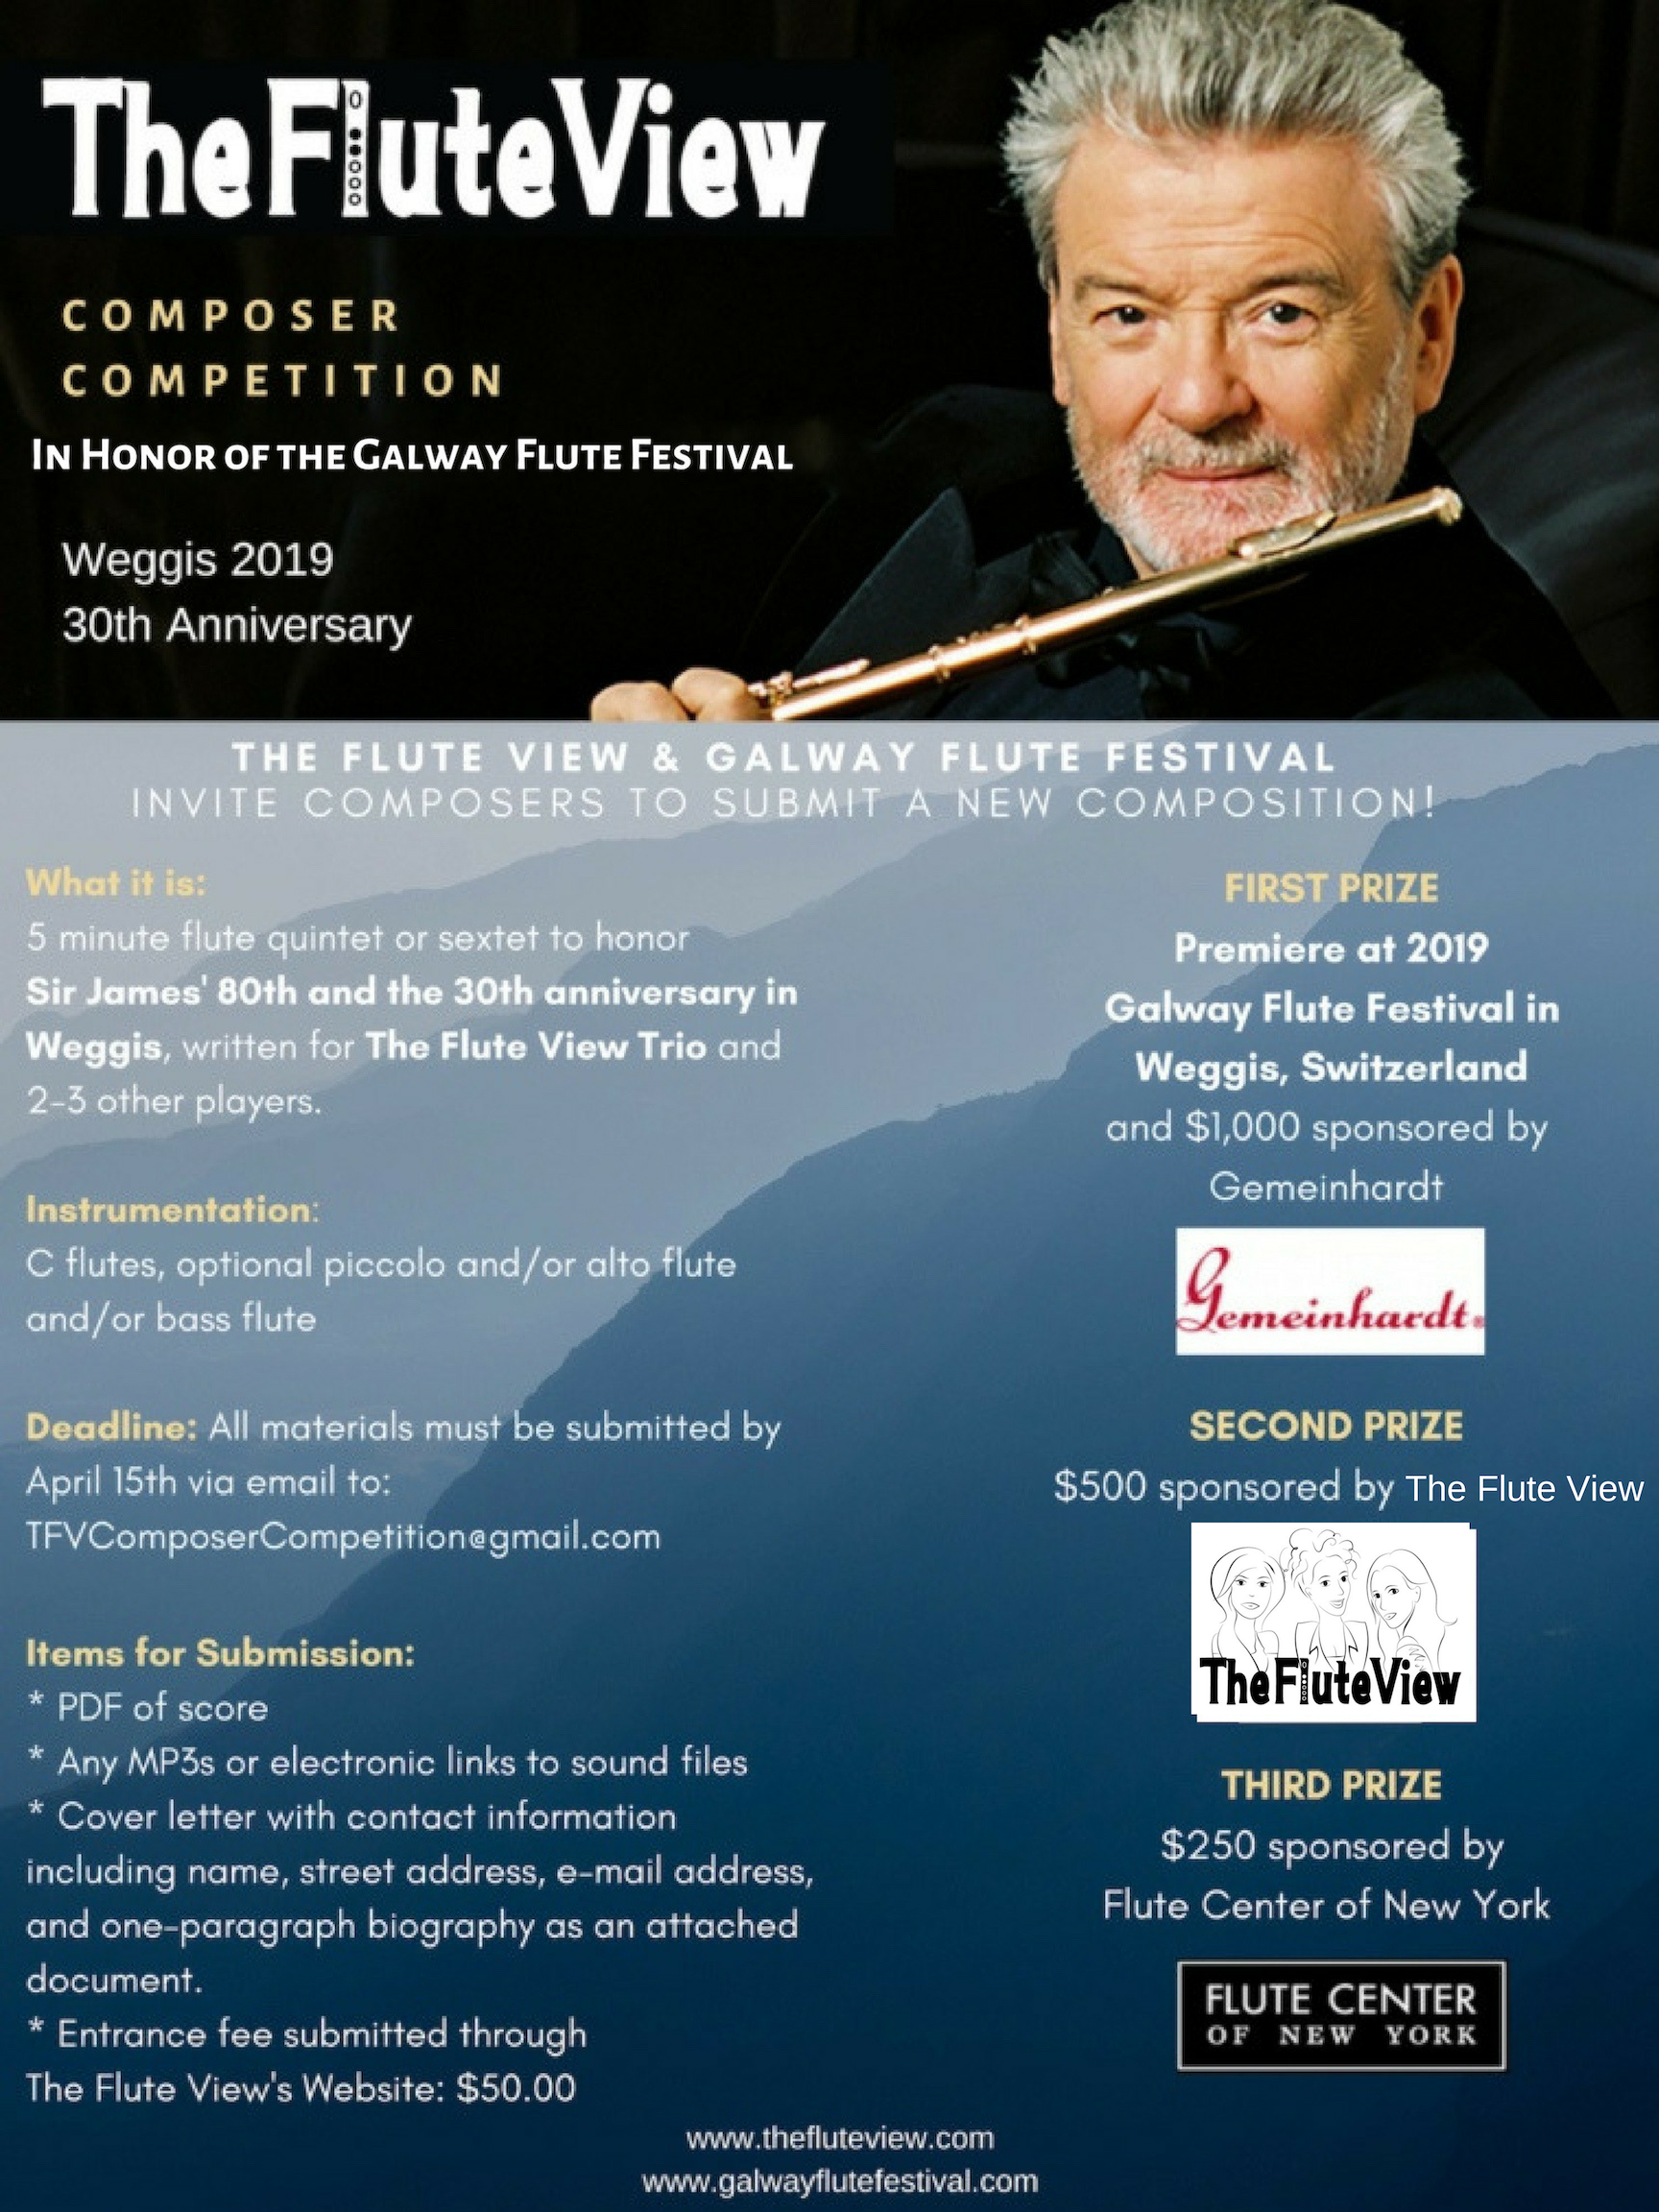 Galway Composer Competition 2019 - The Flute View